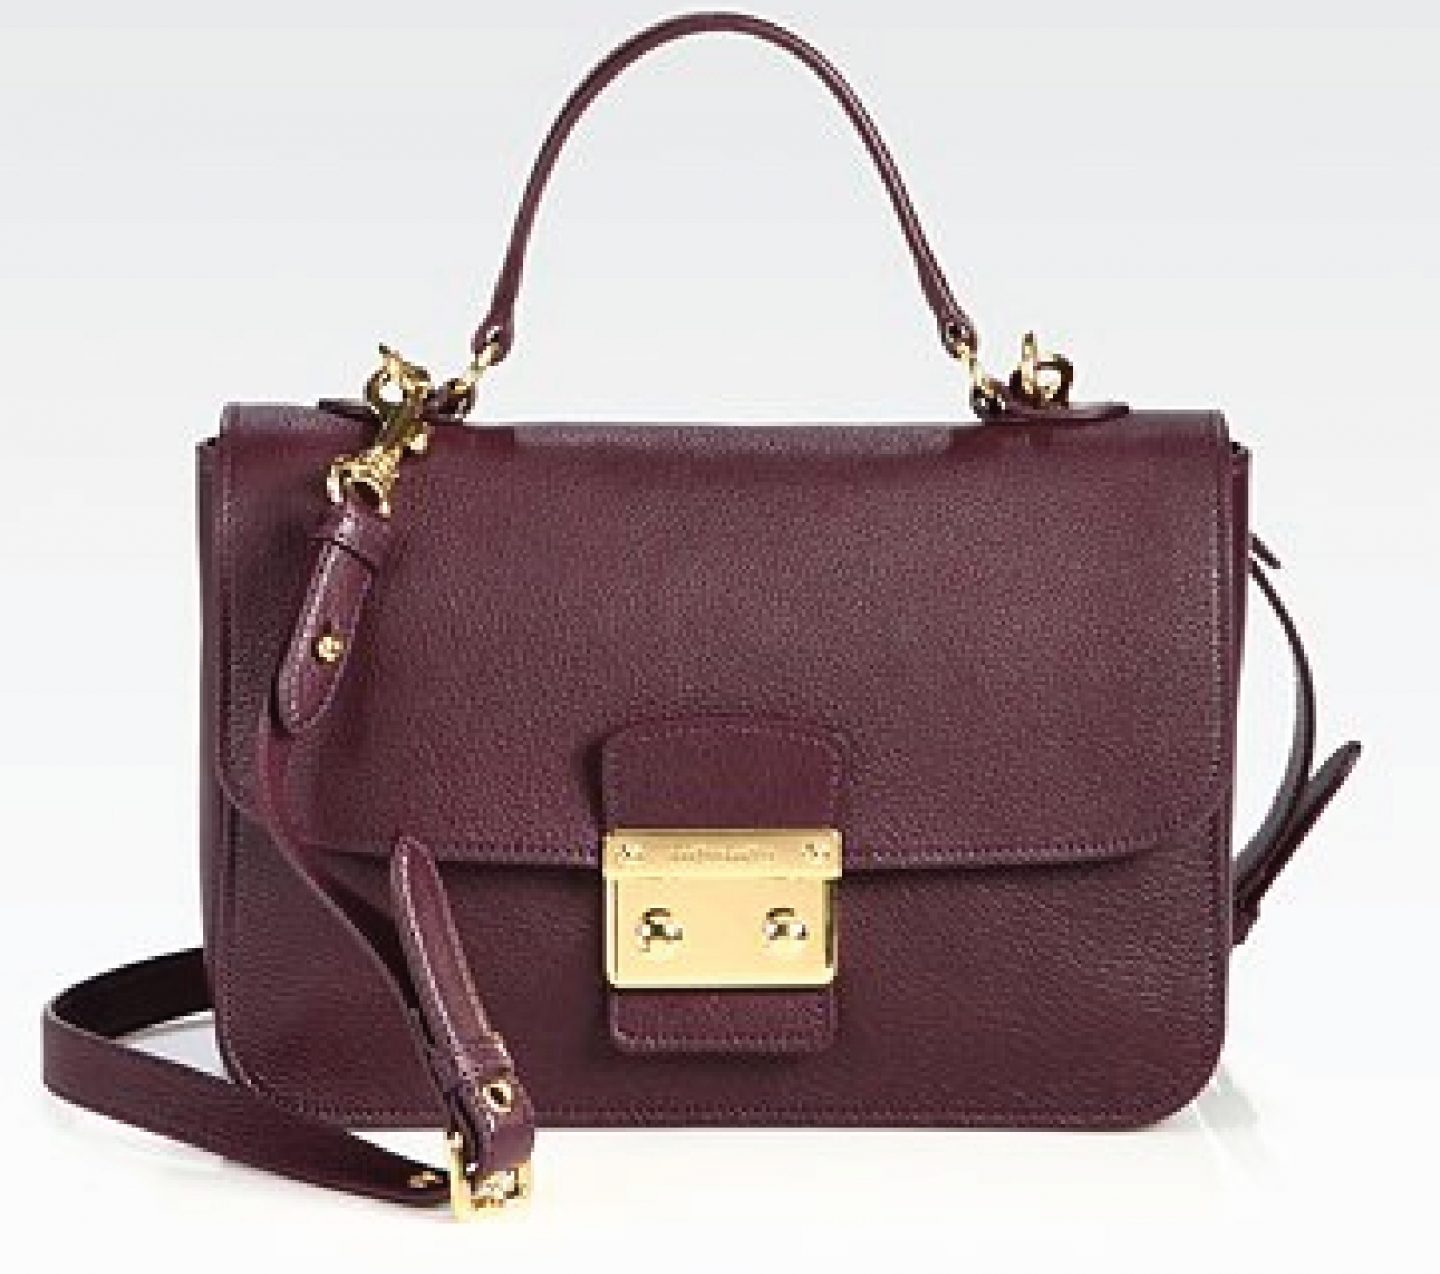 Miu Miu – Madras Crossbody Bag